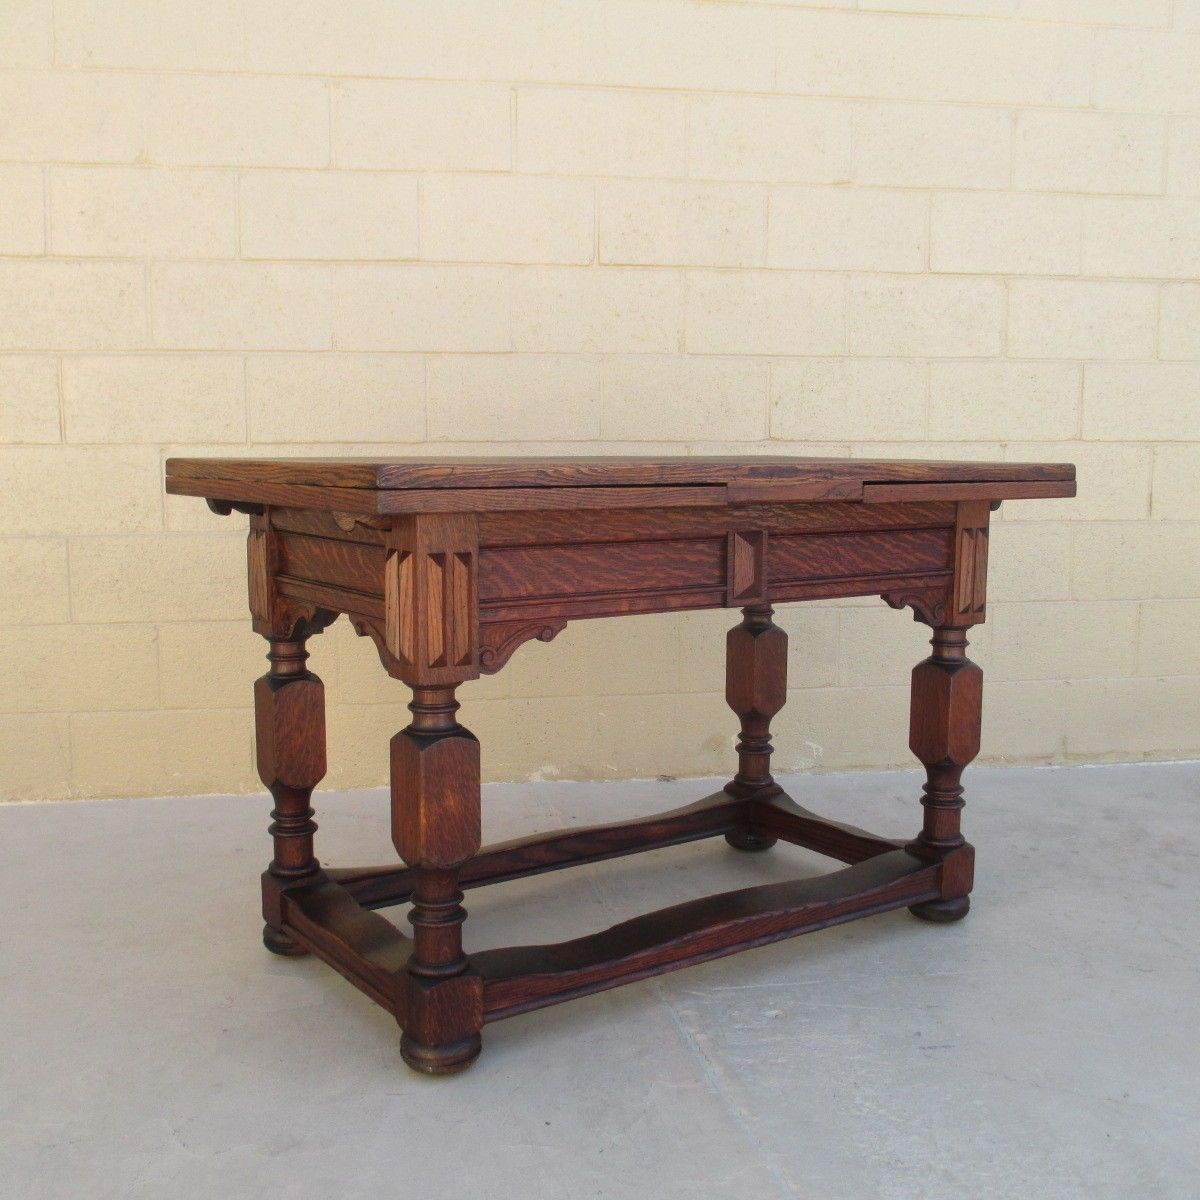 English Antique Refectory Table Extendable Library Table Antique ...